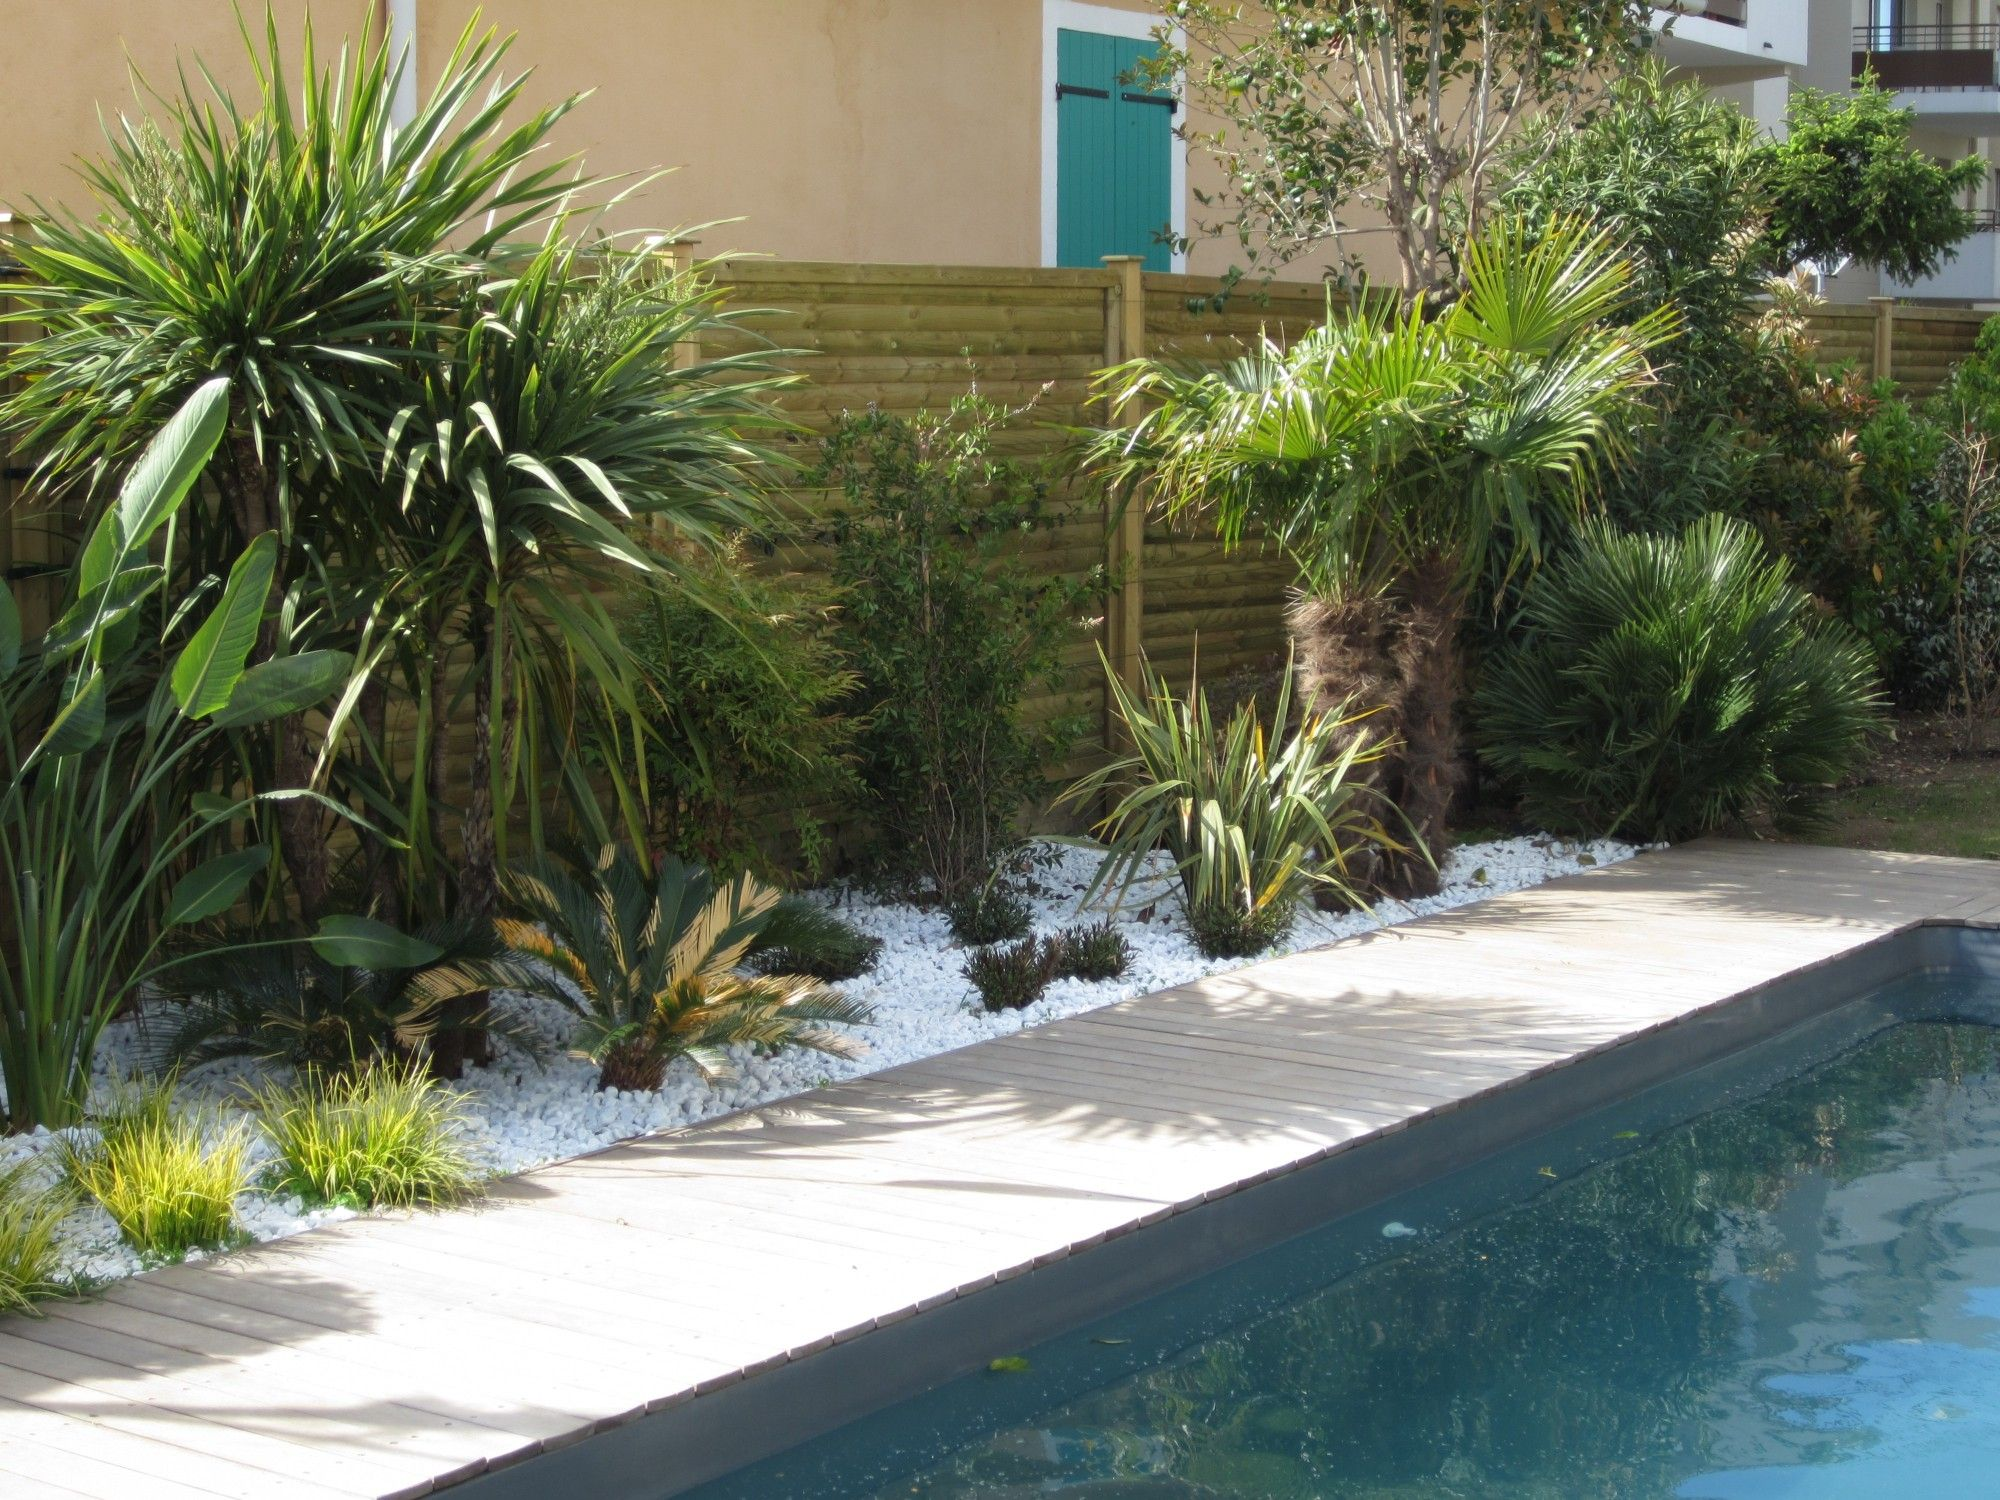 Cr ation d 39 un espace paysager en bord de piscine cr ation for Creation de jardin exotique